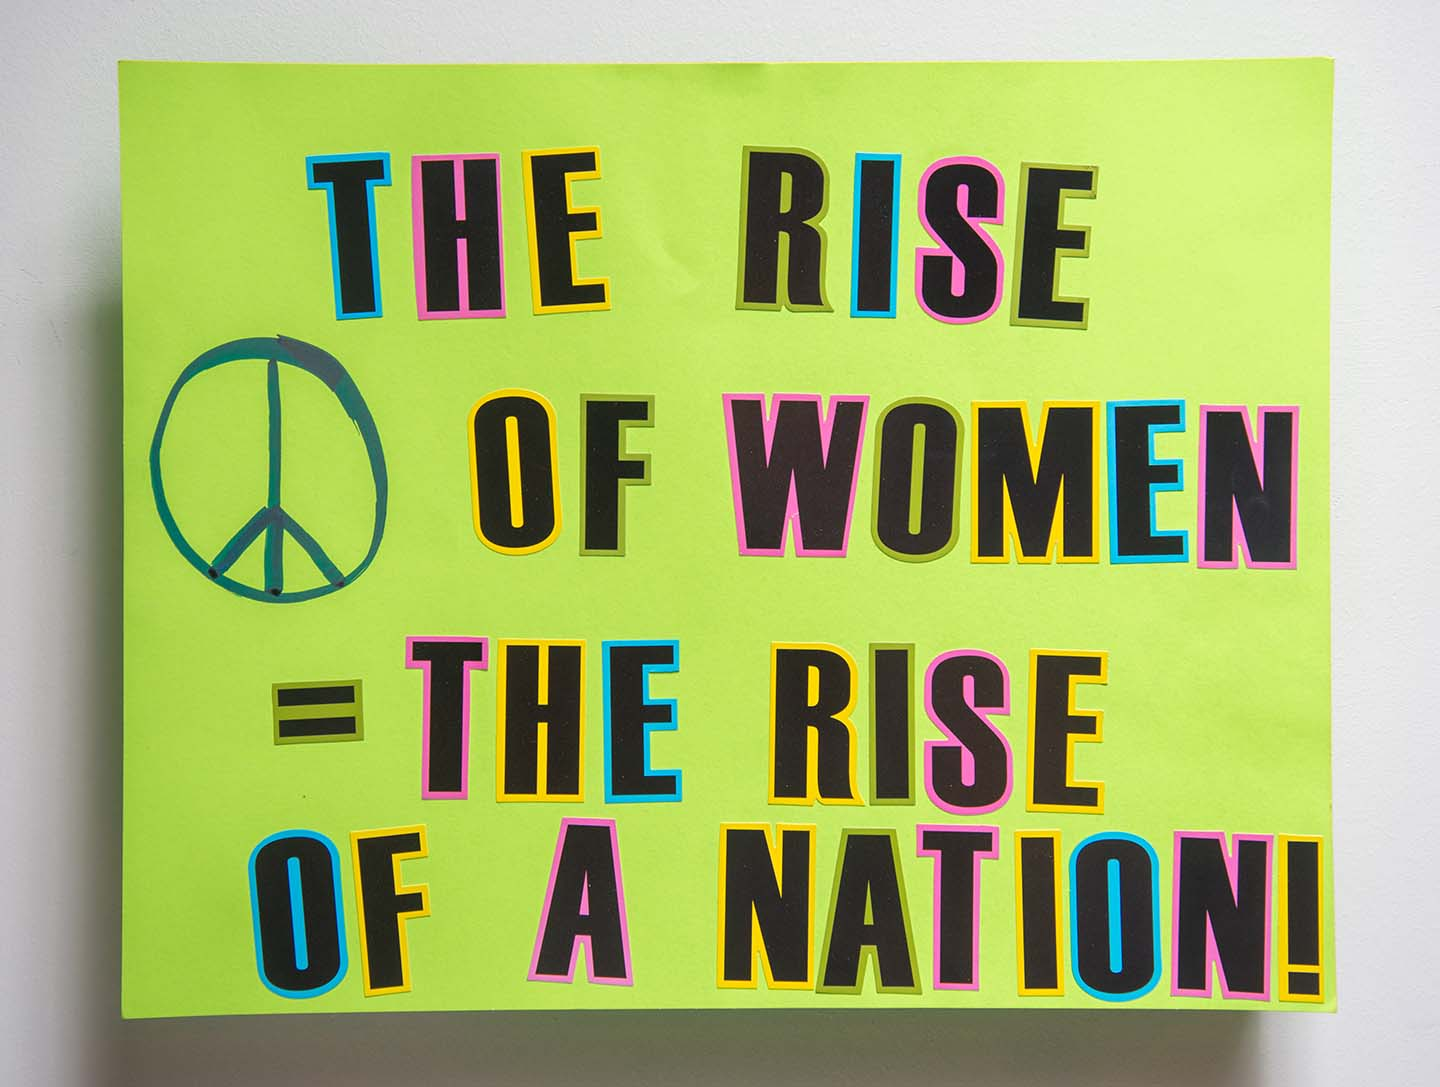 The Rise of Women = The Rise of a Nation